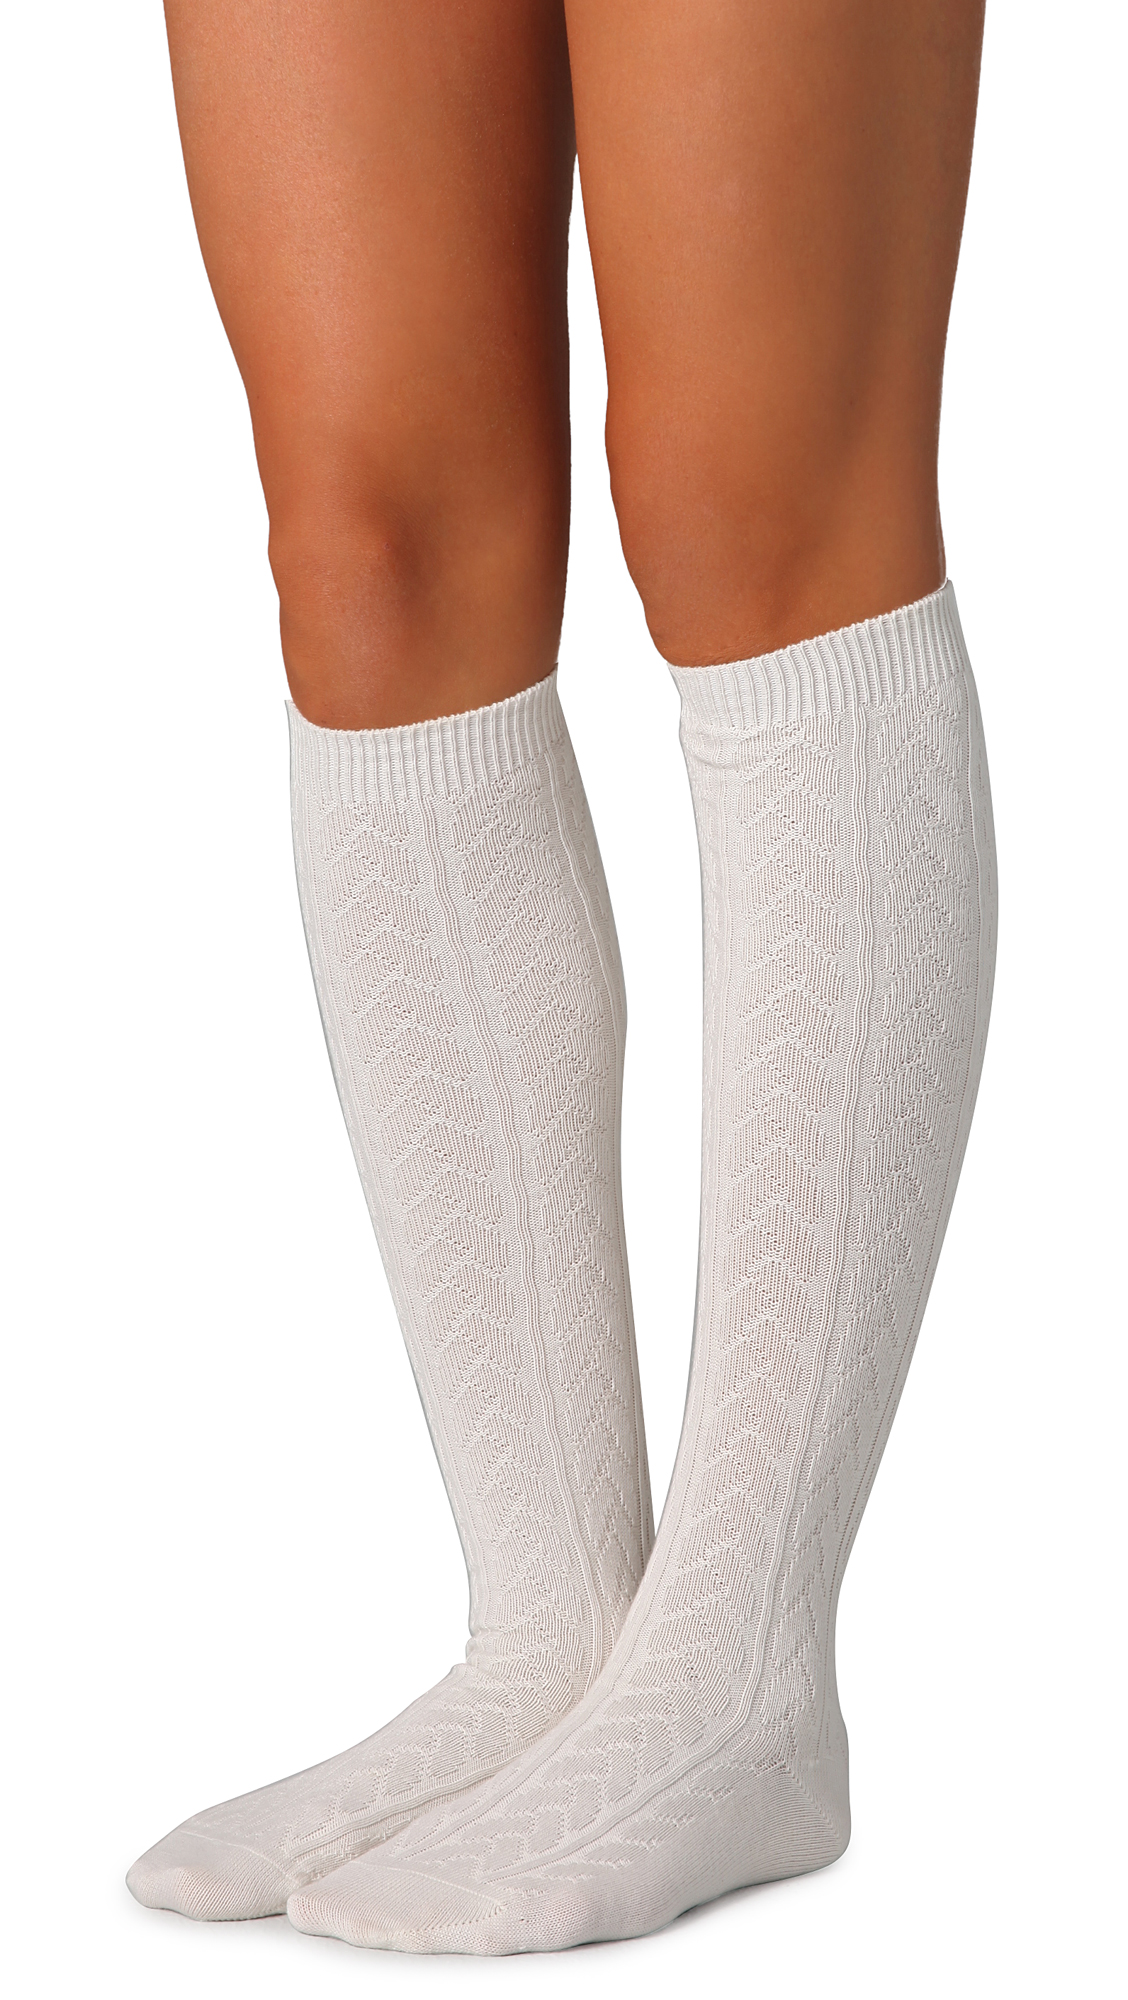 Leave a lasting impression with black paw prints on your white knee socks or wear your personal hobby or passion with pride. Whether you are a cheerleader, music student, wine, or sweet lover, there is a fantastic pair of socks waiting in the section below for you.